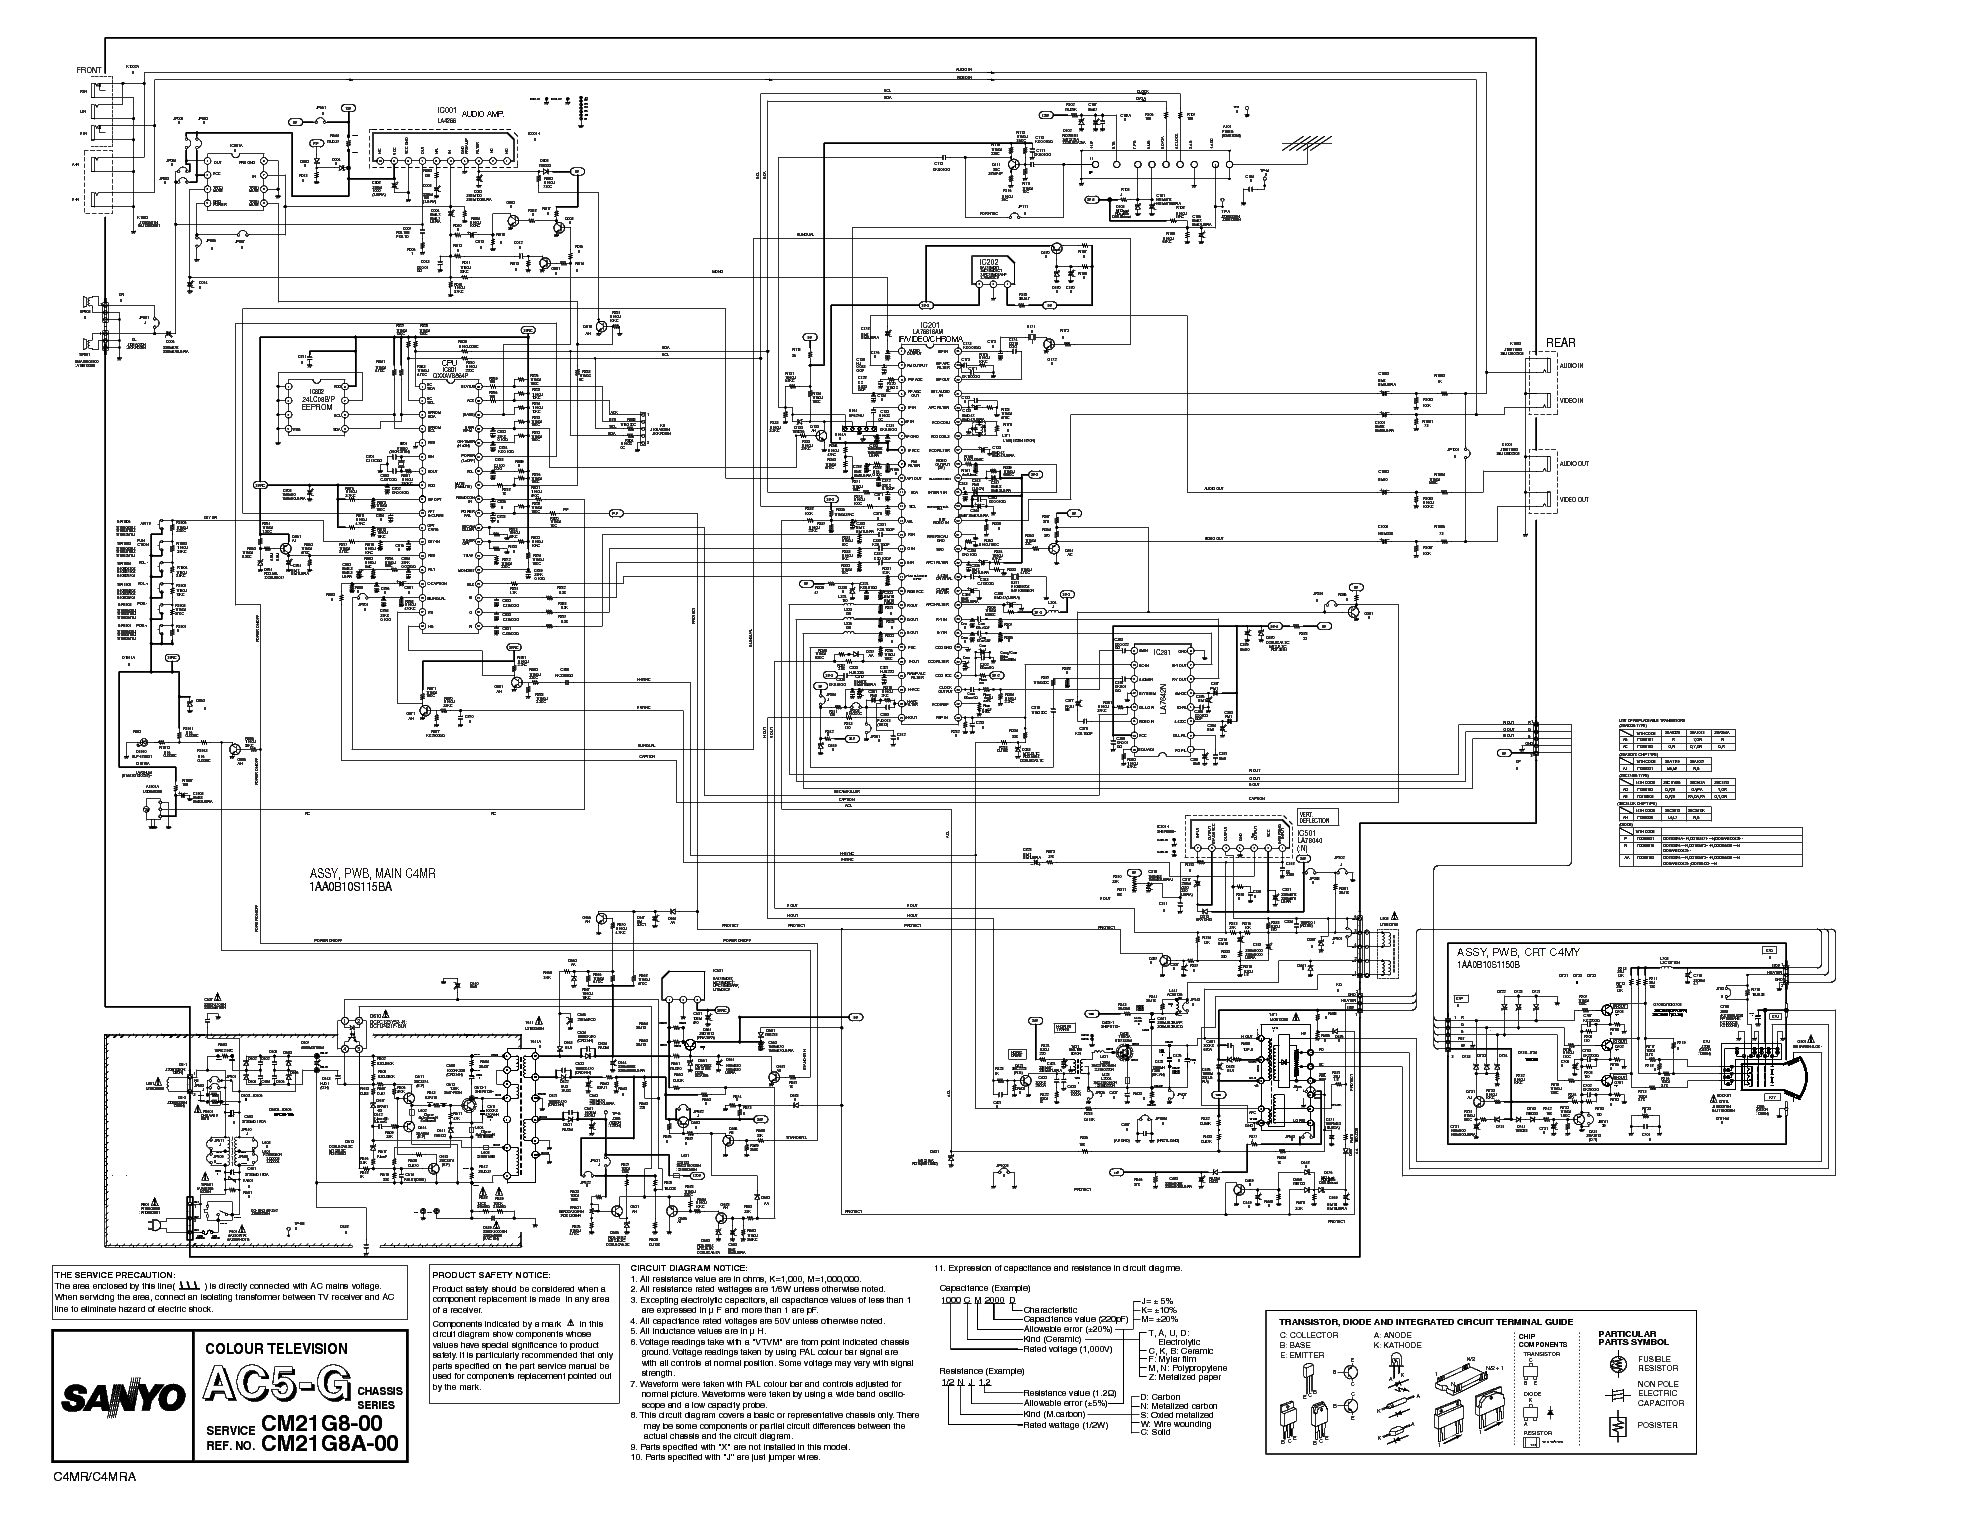 Sanyo Wiring Diagram And Schematics T V Circuit Tv Radio U2022 Rh Augmently Co Free Schematic